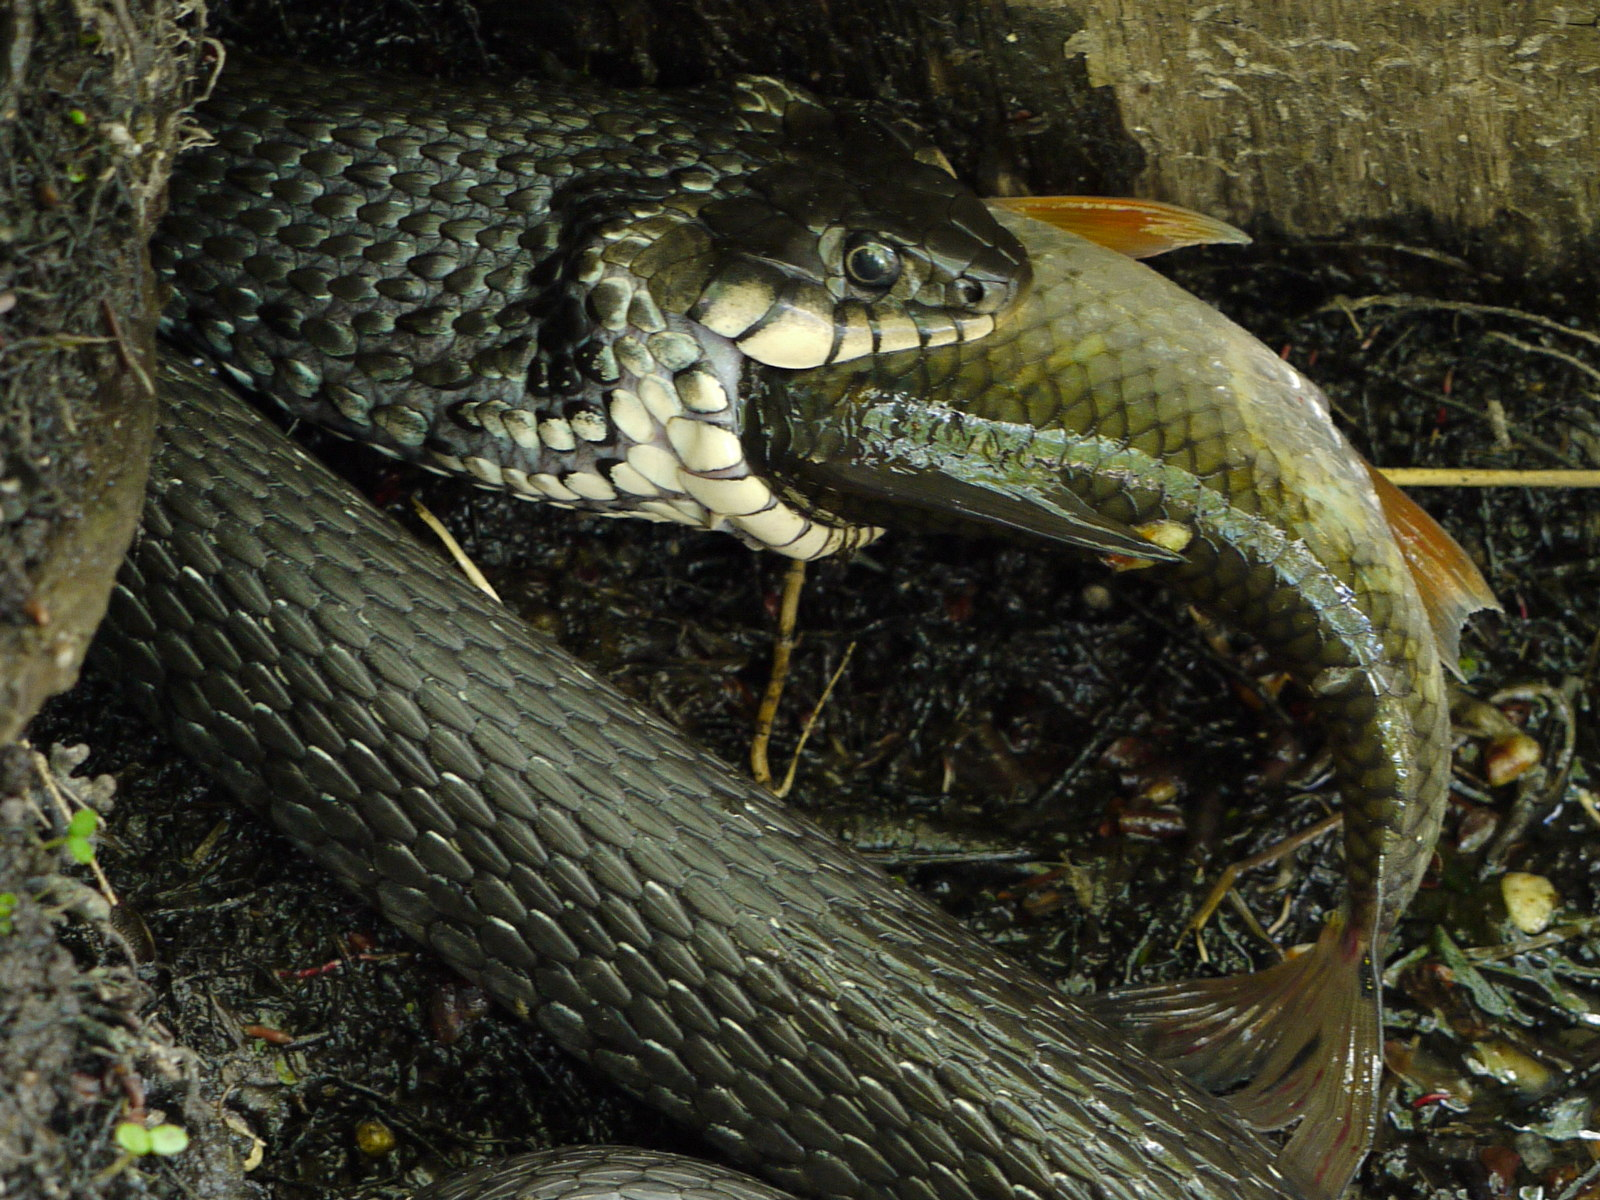 Water snake and prey